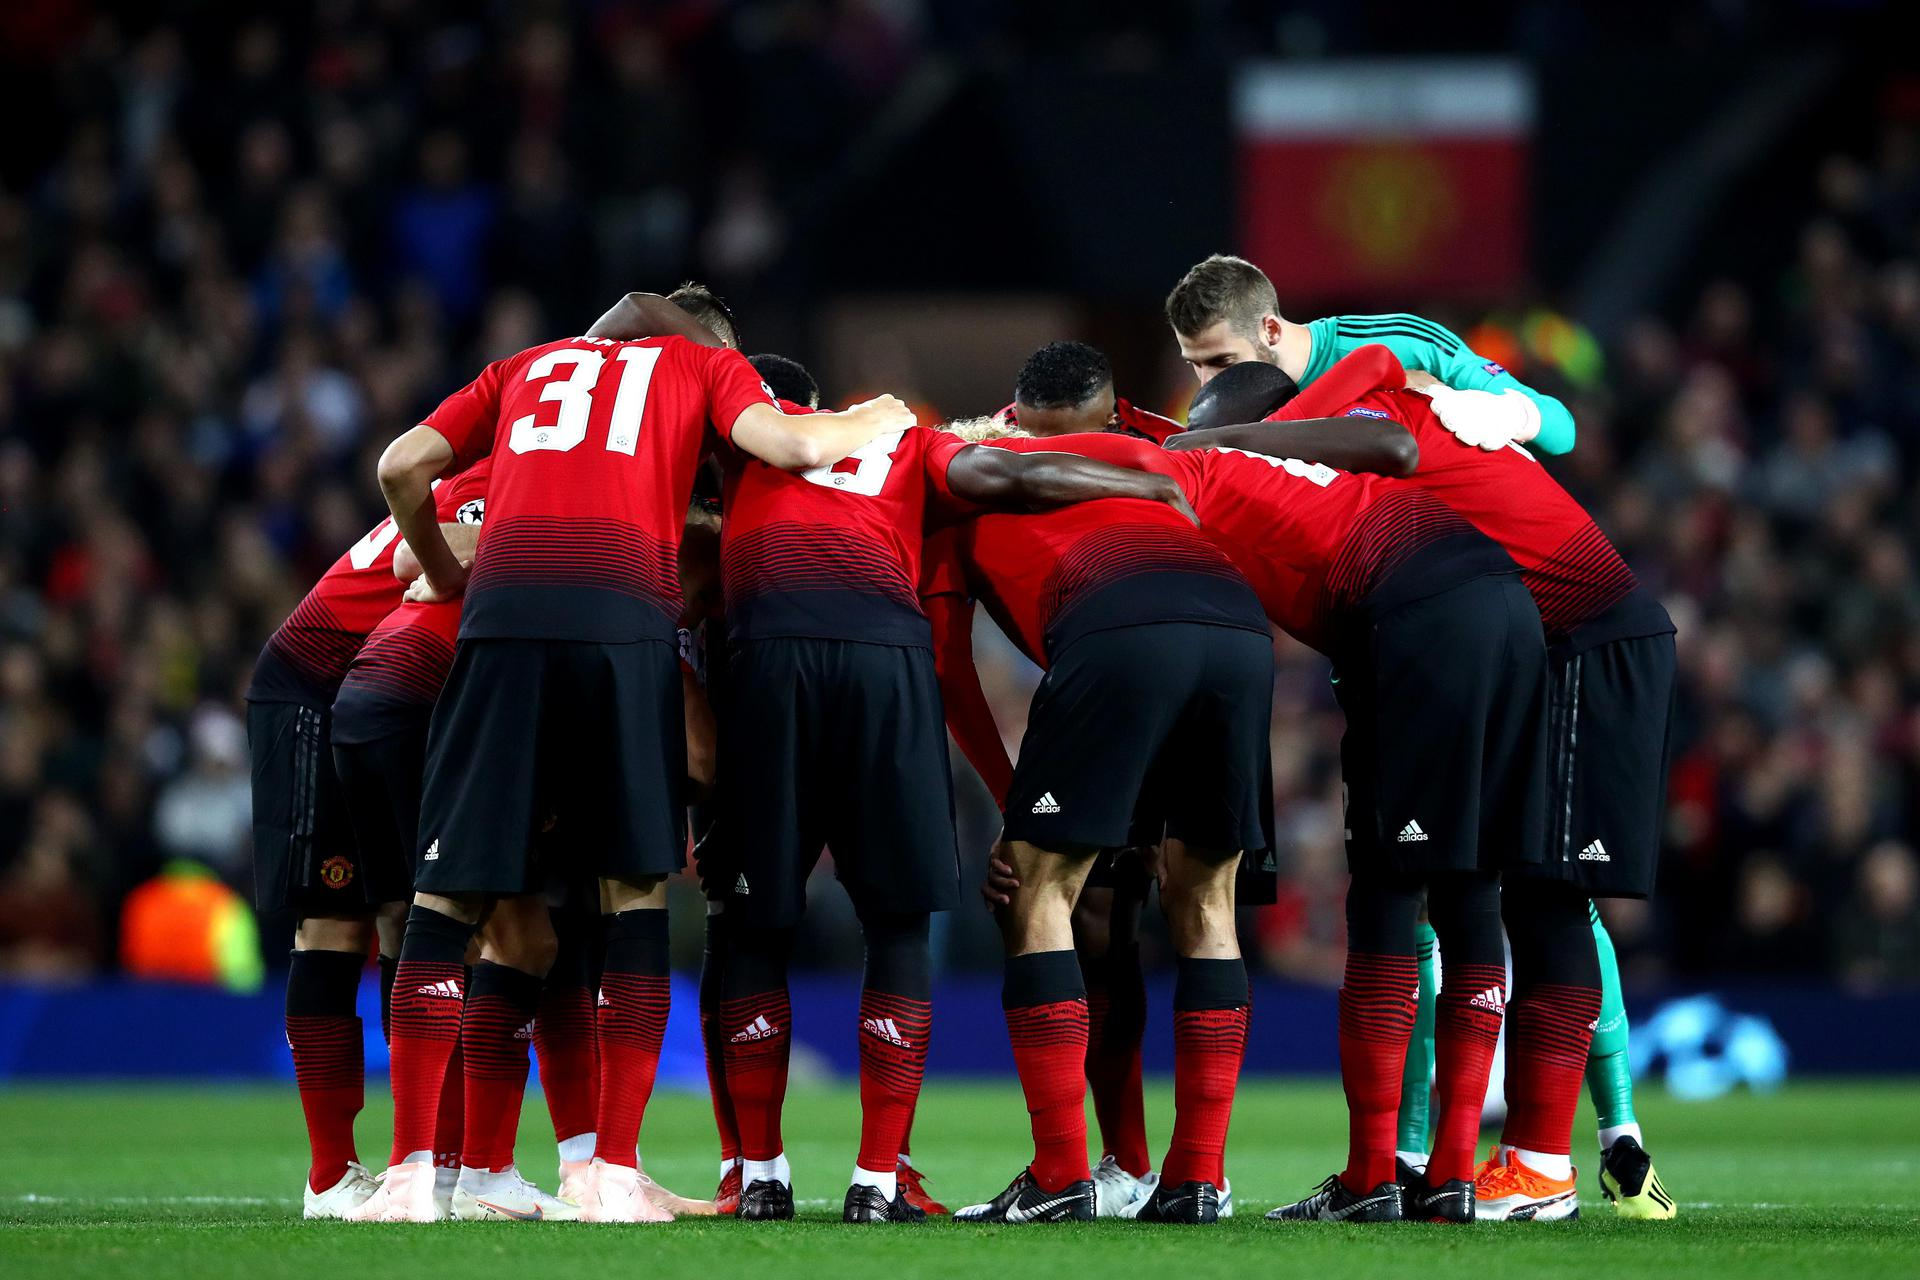 The pre-match huddle ahead of the 0-0 draw.